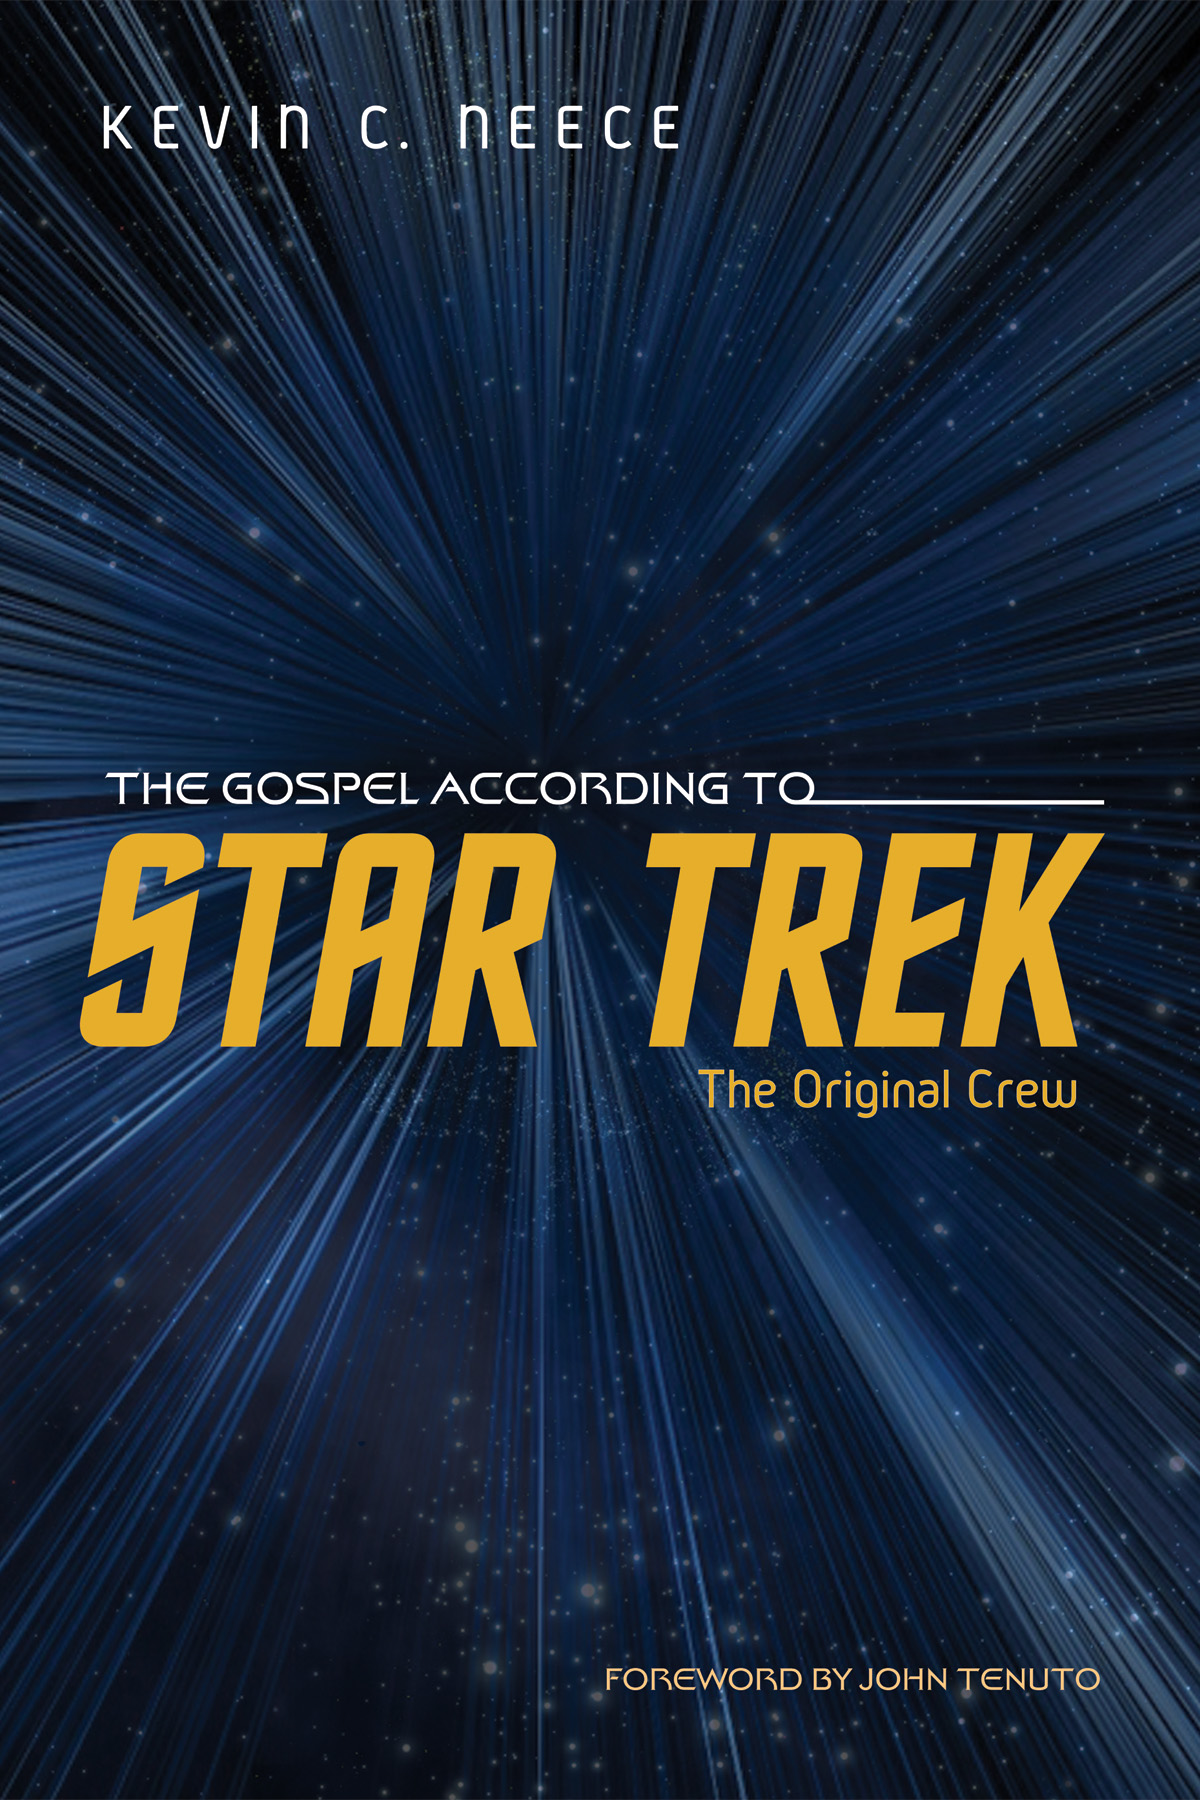 Gospel According to Star_Trek.jpg